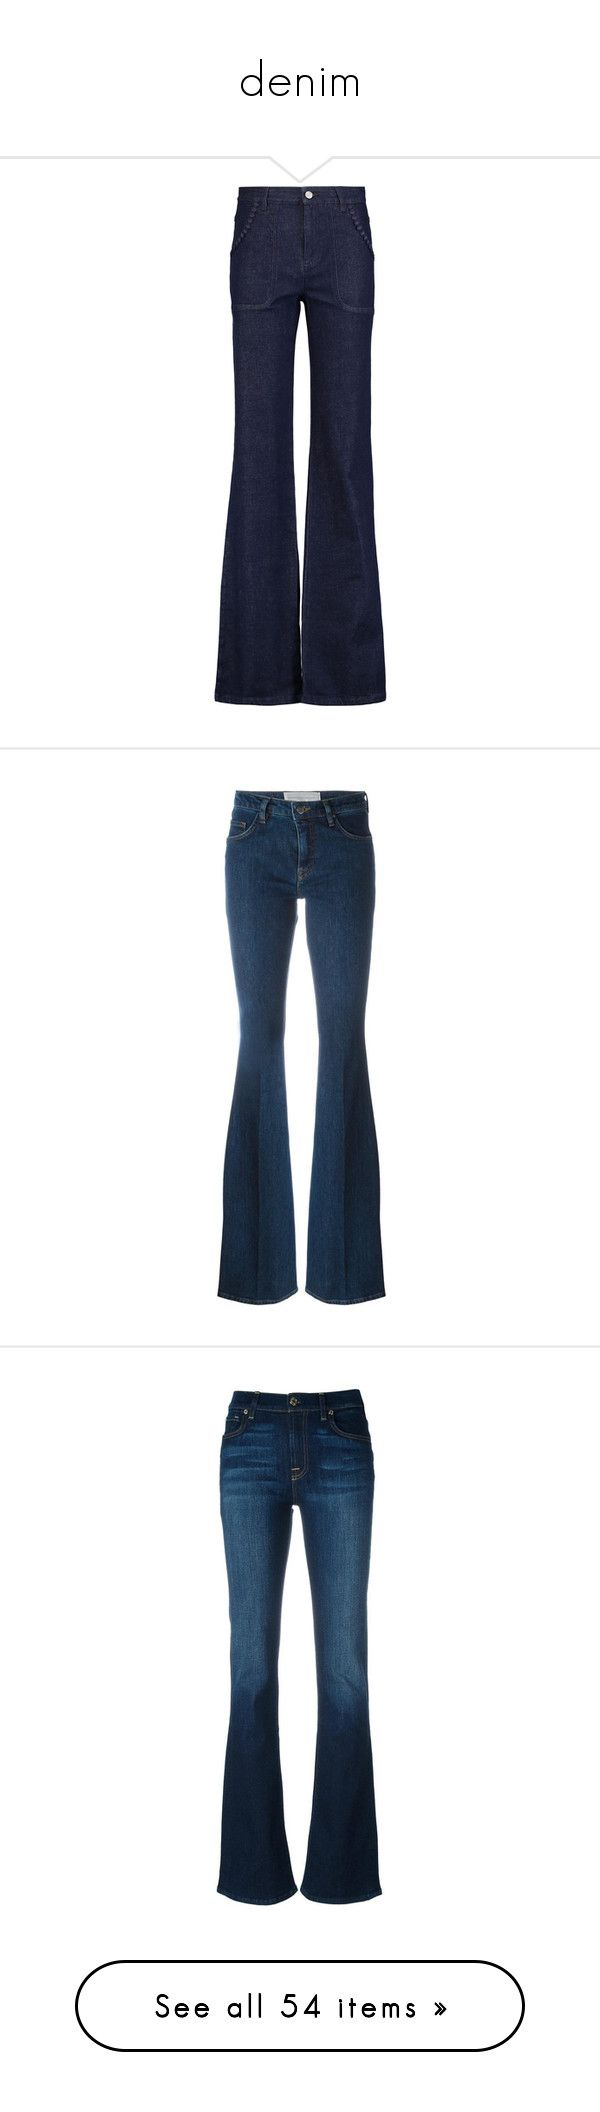 """""""denim"""" by killasuki ❤ liked on Polyvore featuring jeans, pants, mid denim, high waisted blue jeans, slim cut jeans, slim fit blue jeans, high-rise flared jeans, blue jeans, victoria beckham and bottoms"""